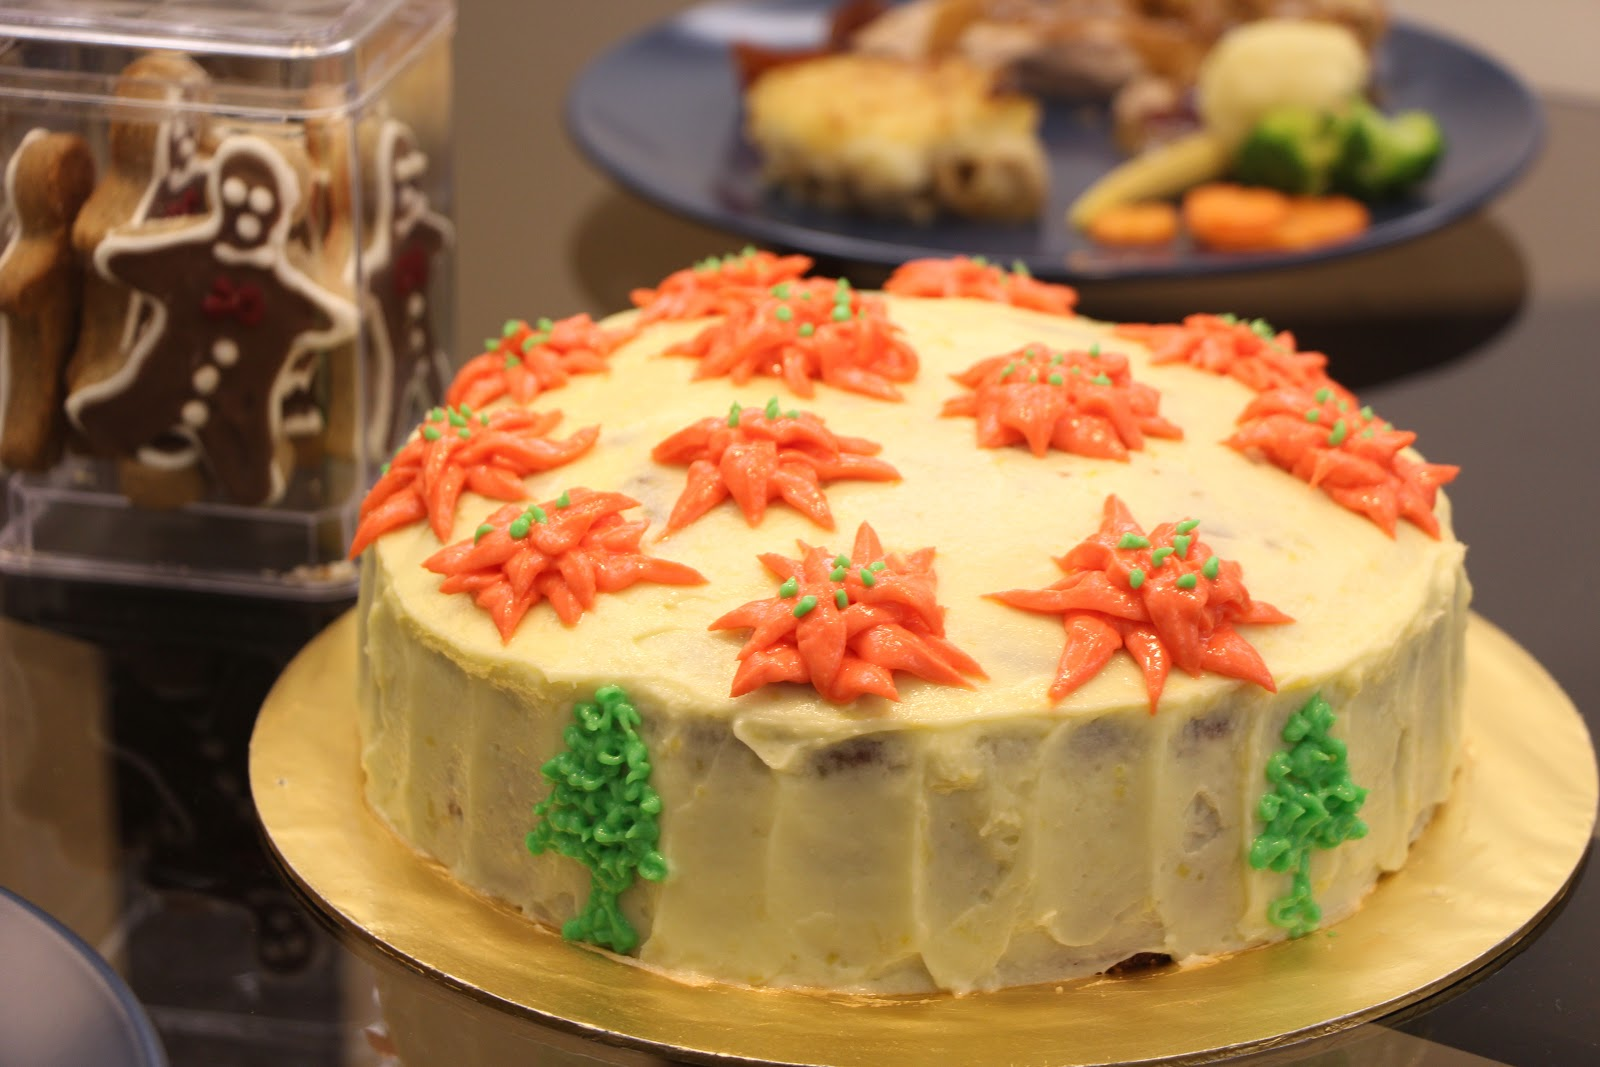 Carrot Cake With Crumble Topping